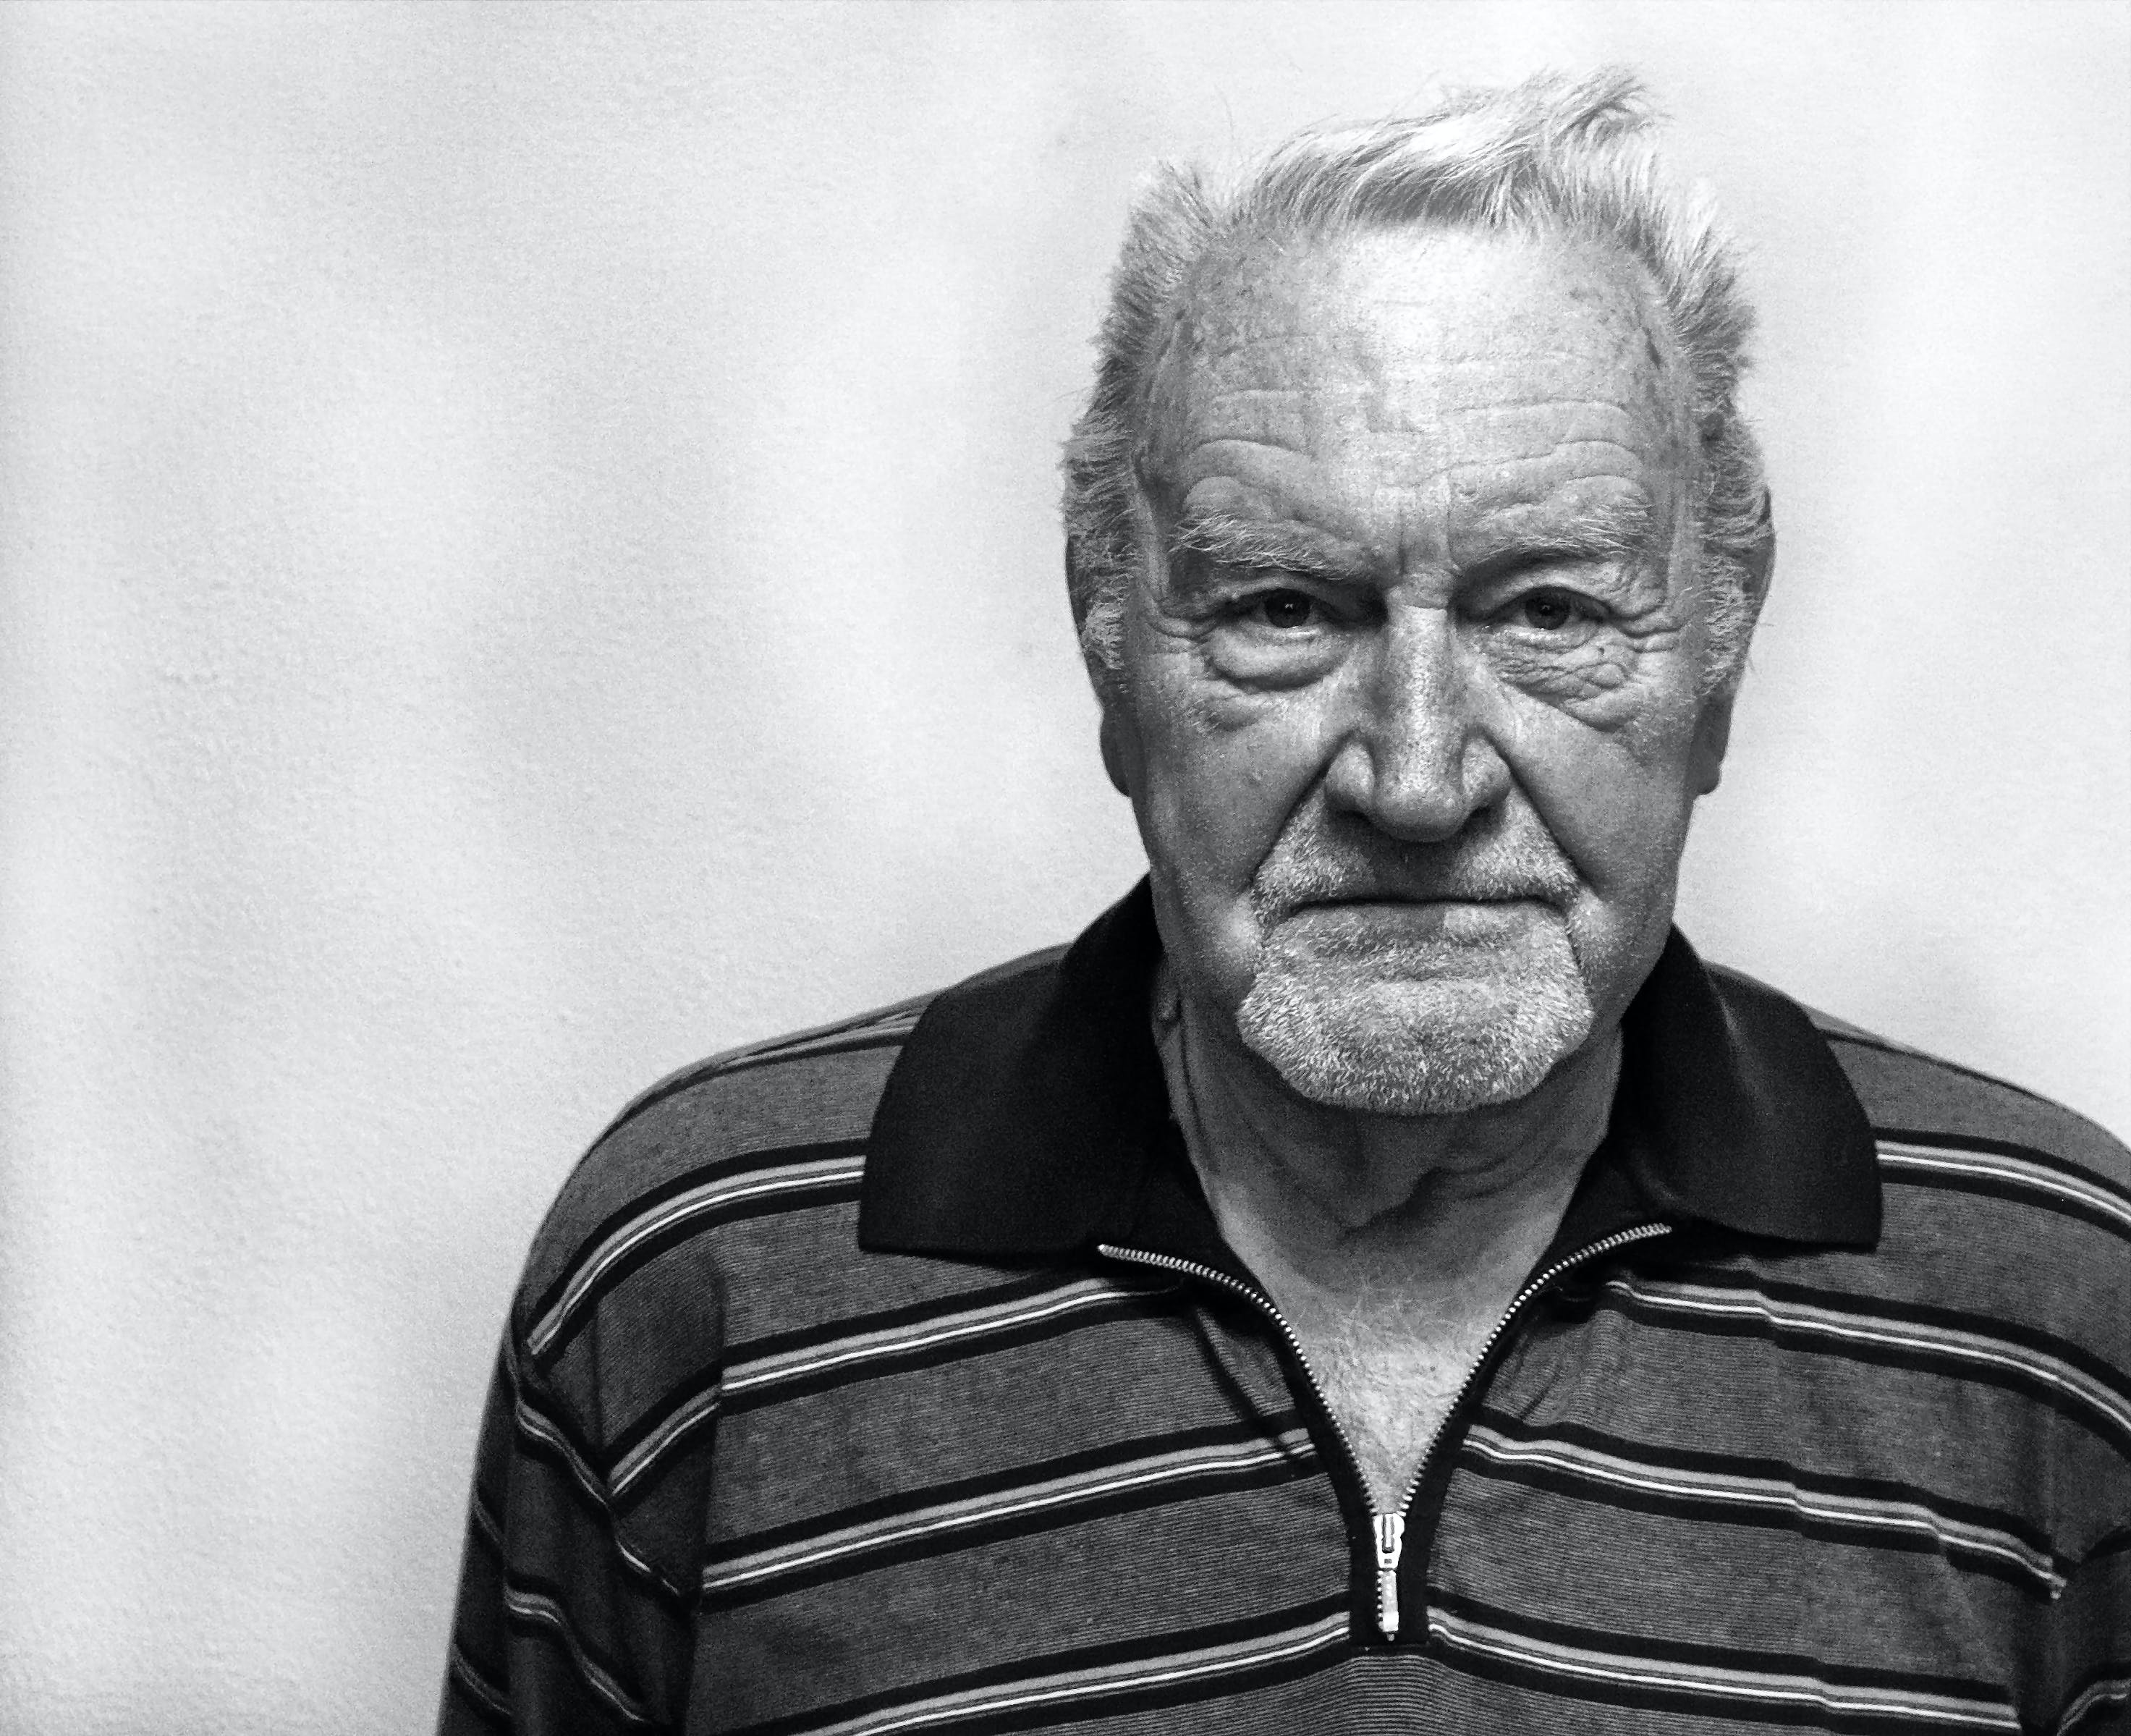 Grayscale Photography of Man Wearing Polo Shirt